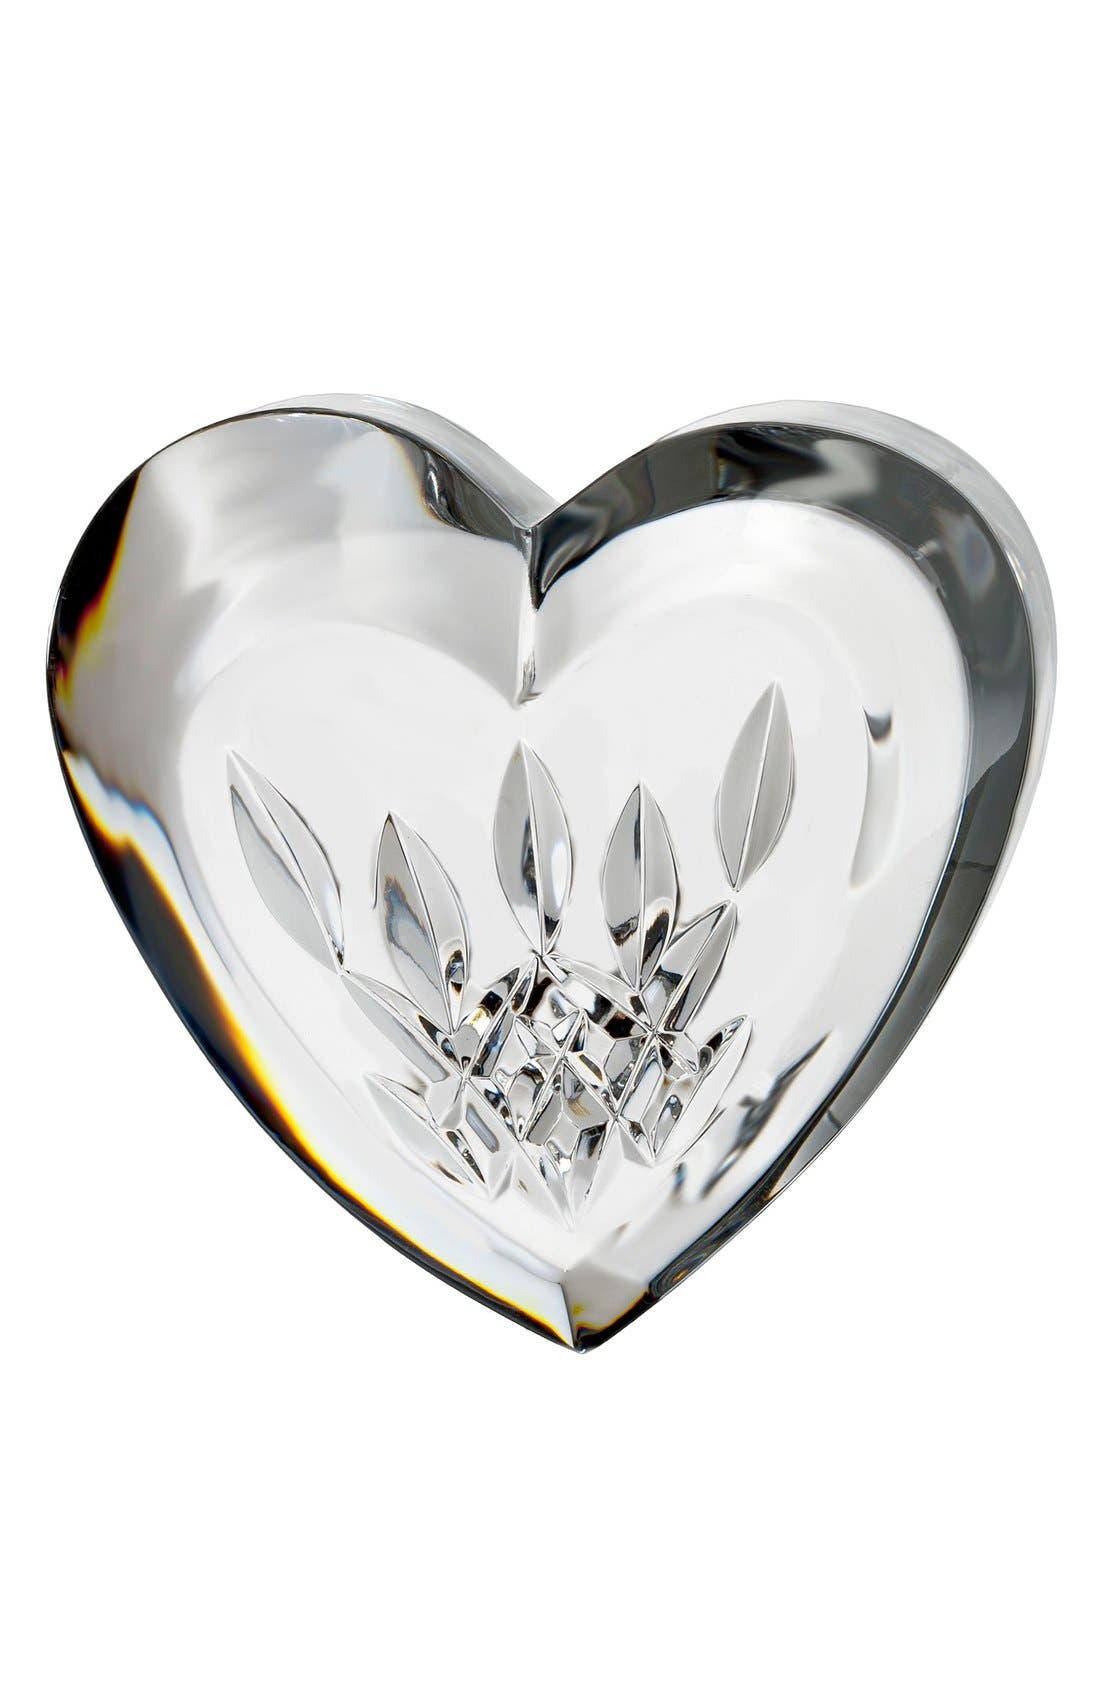 Main Image - Waterford 'Lismore' Heart Lead Crystal Paperweight